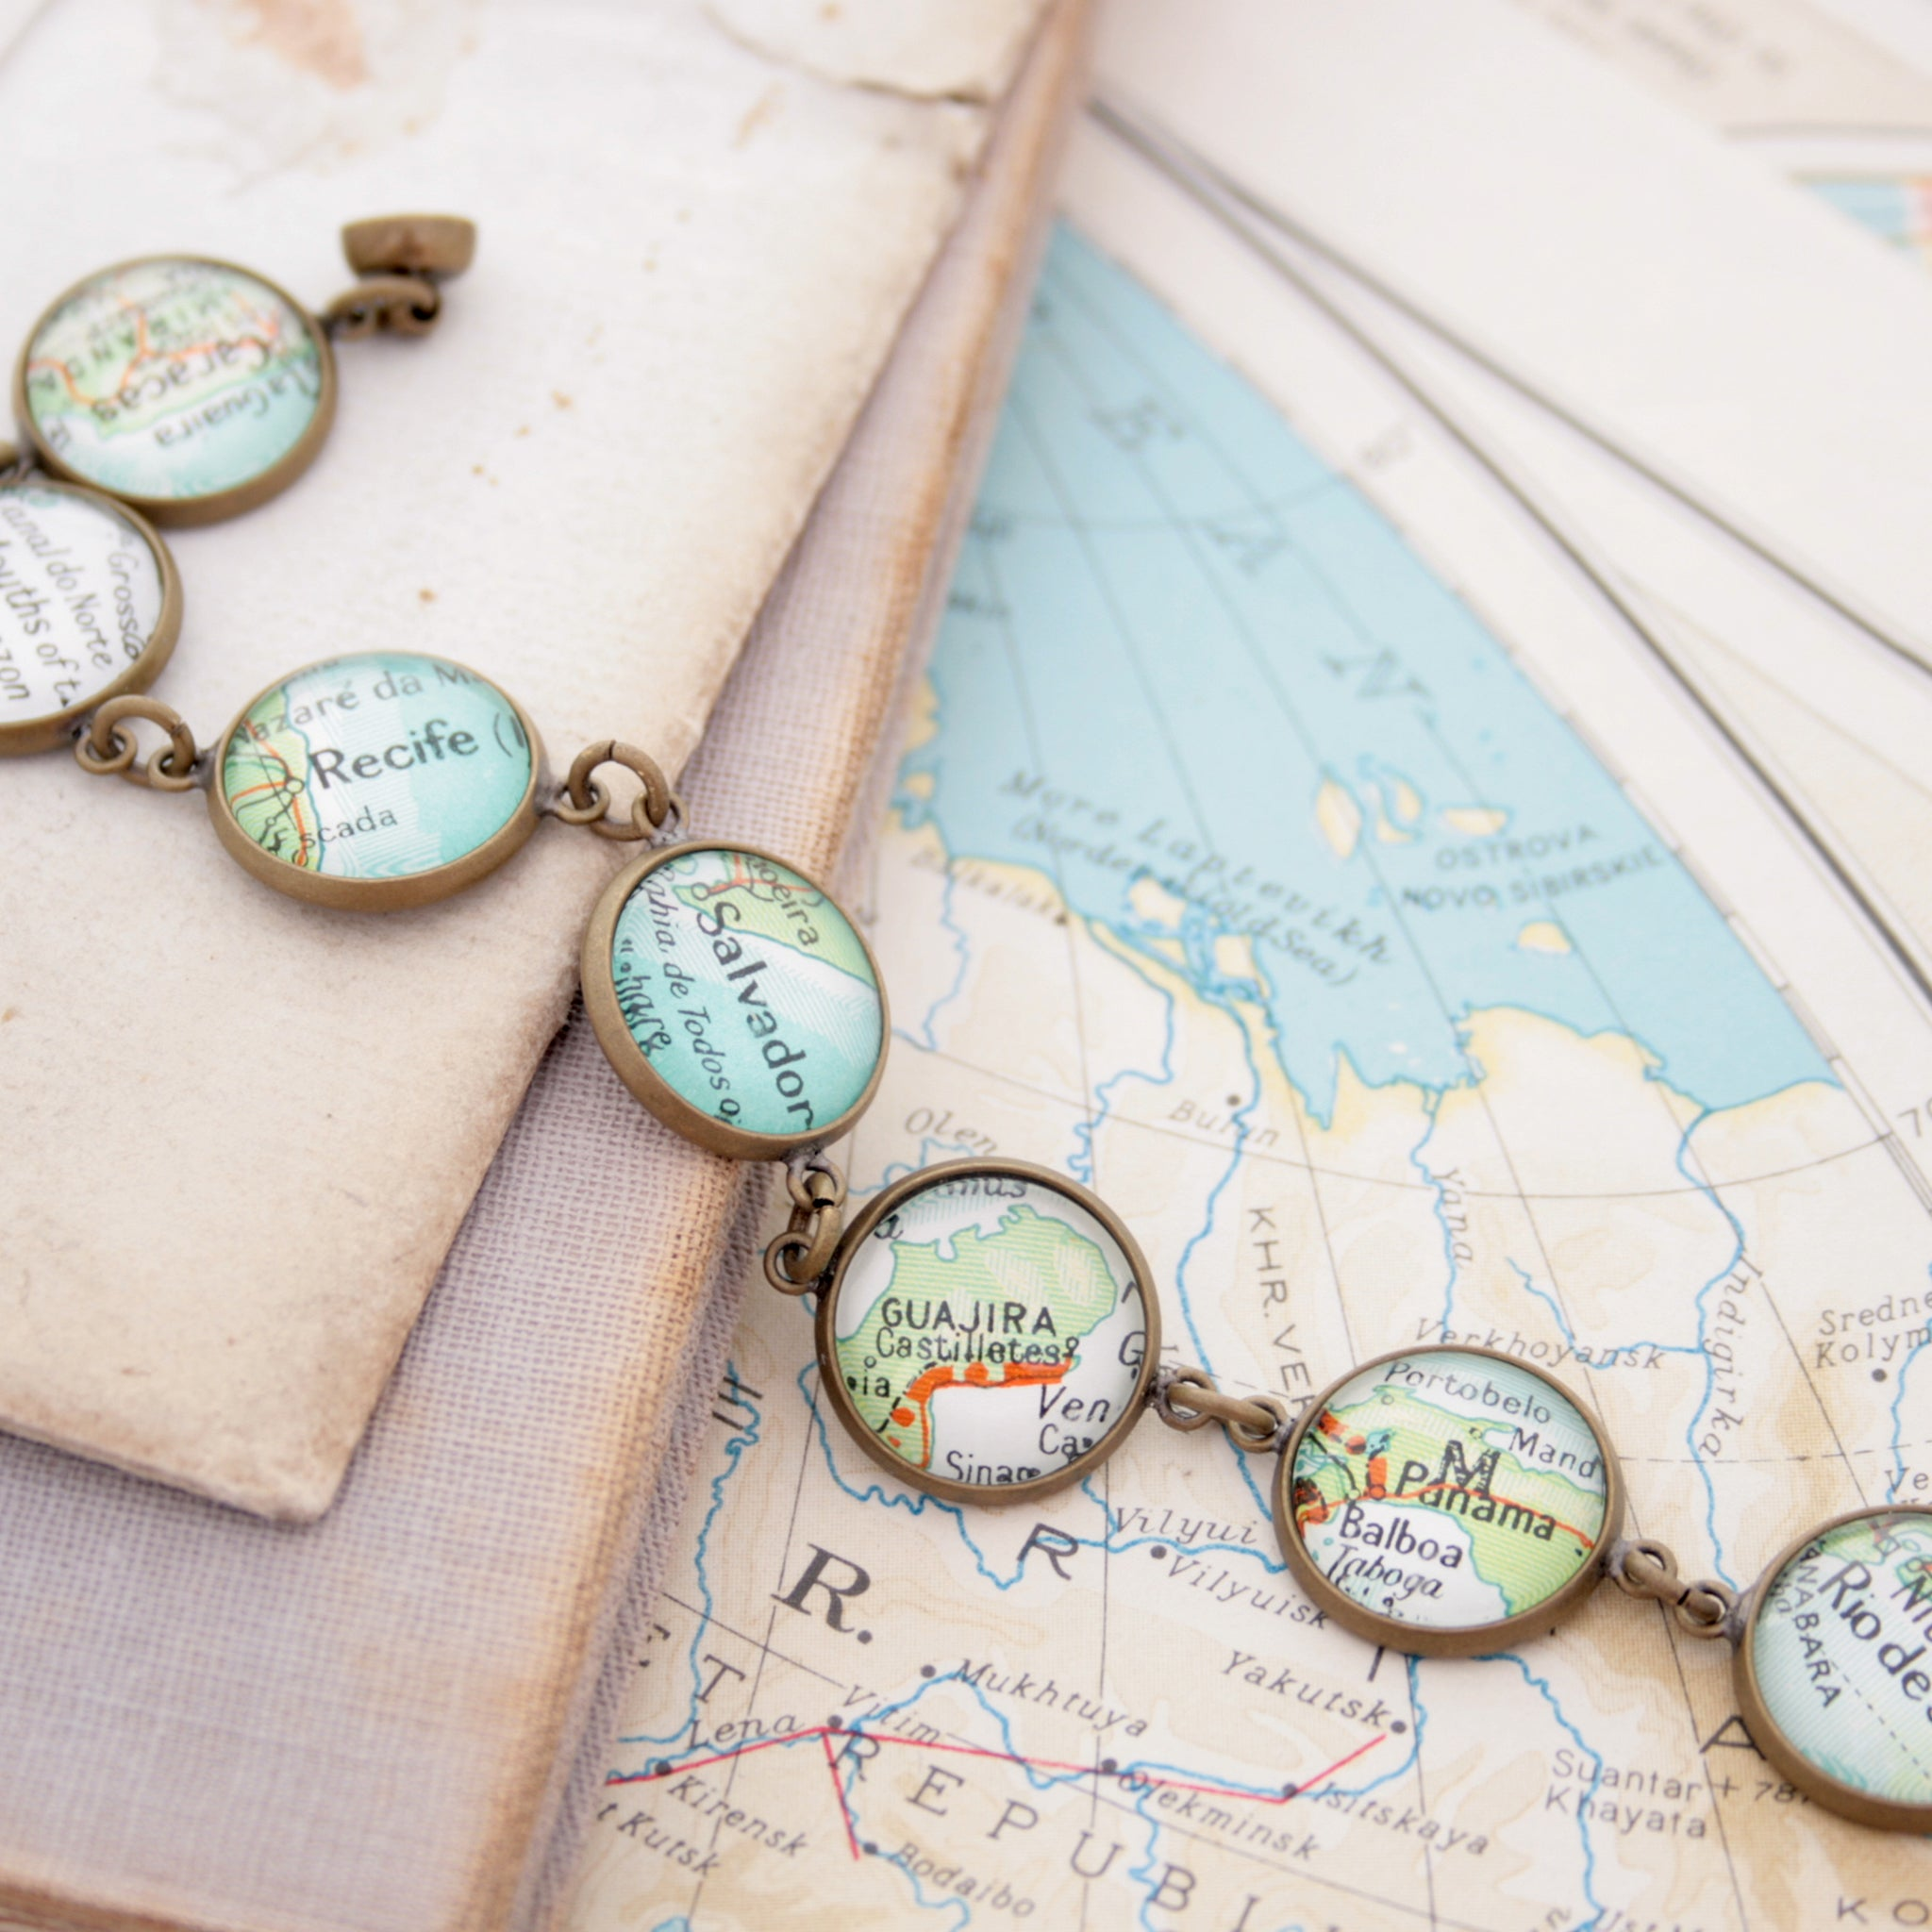 Antique bronze beaded bracelet featuring different map locations